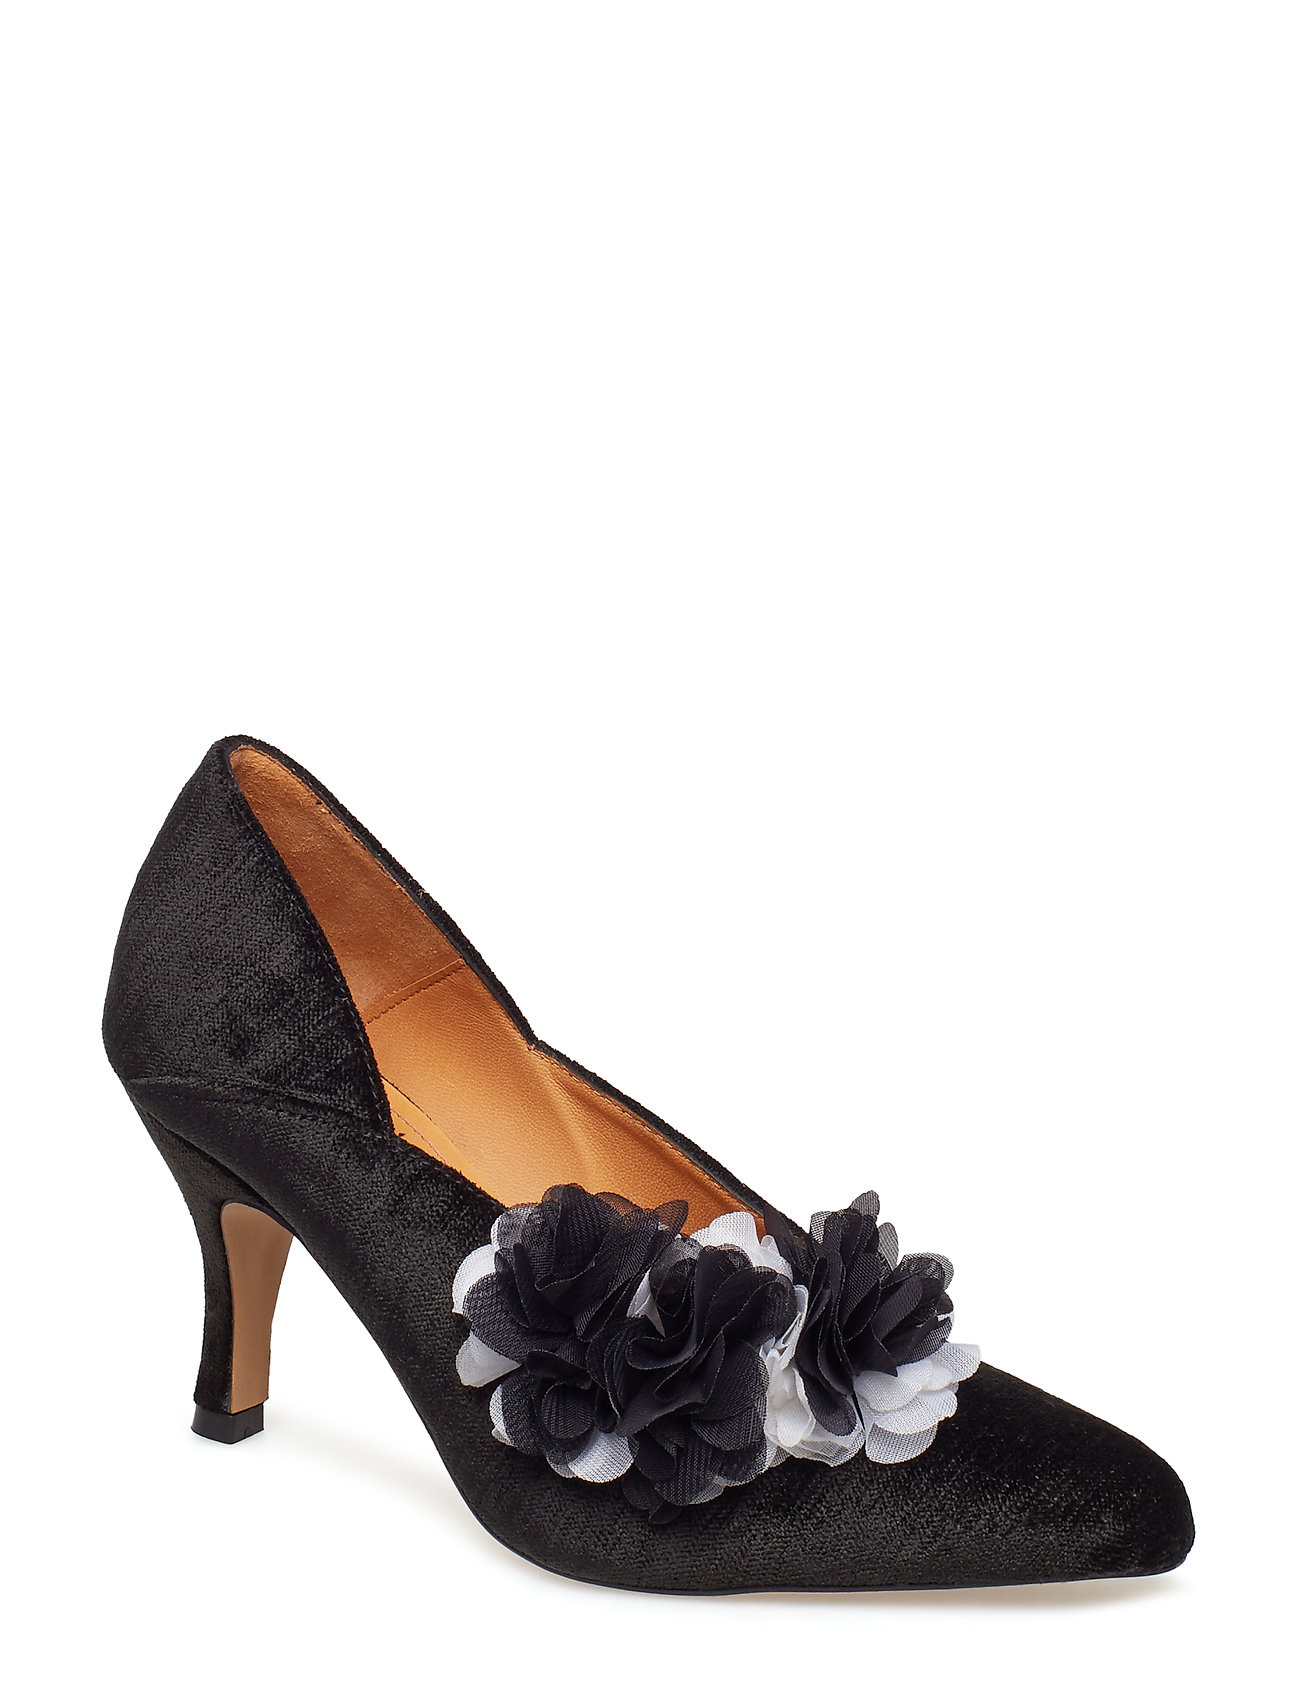 STINE GOYA Lou, 496 Velvet Shoes